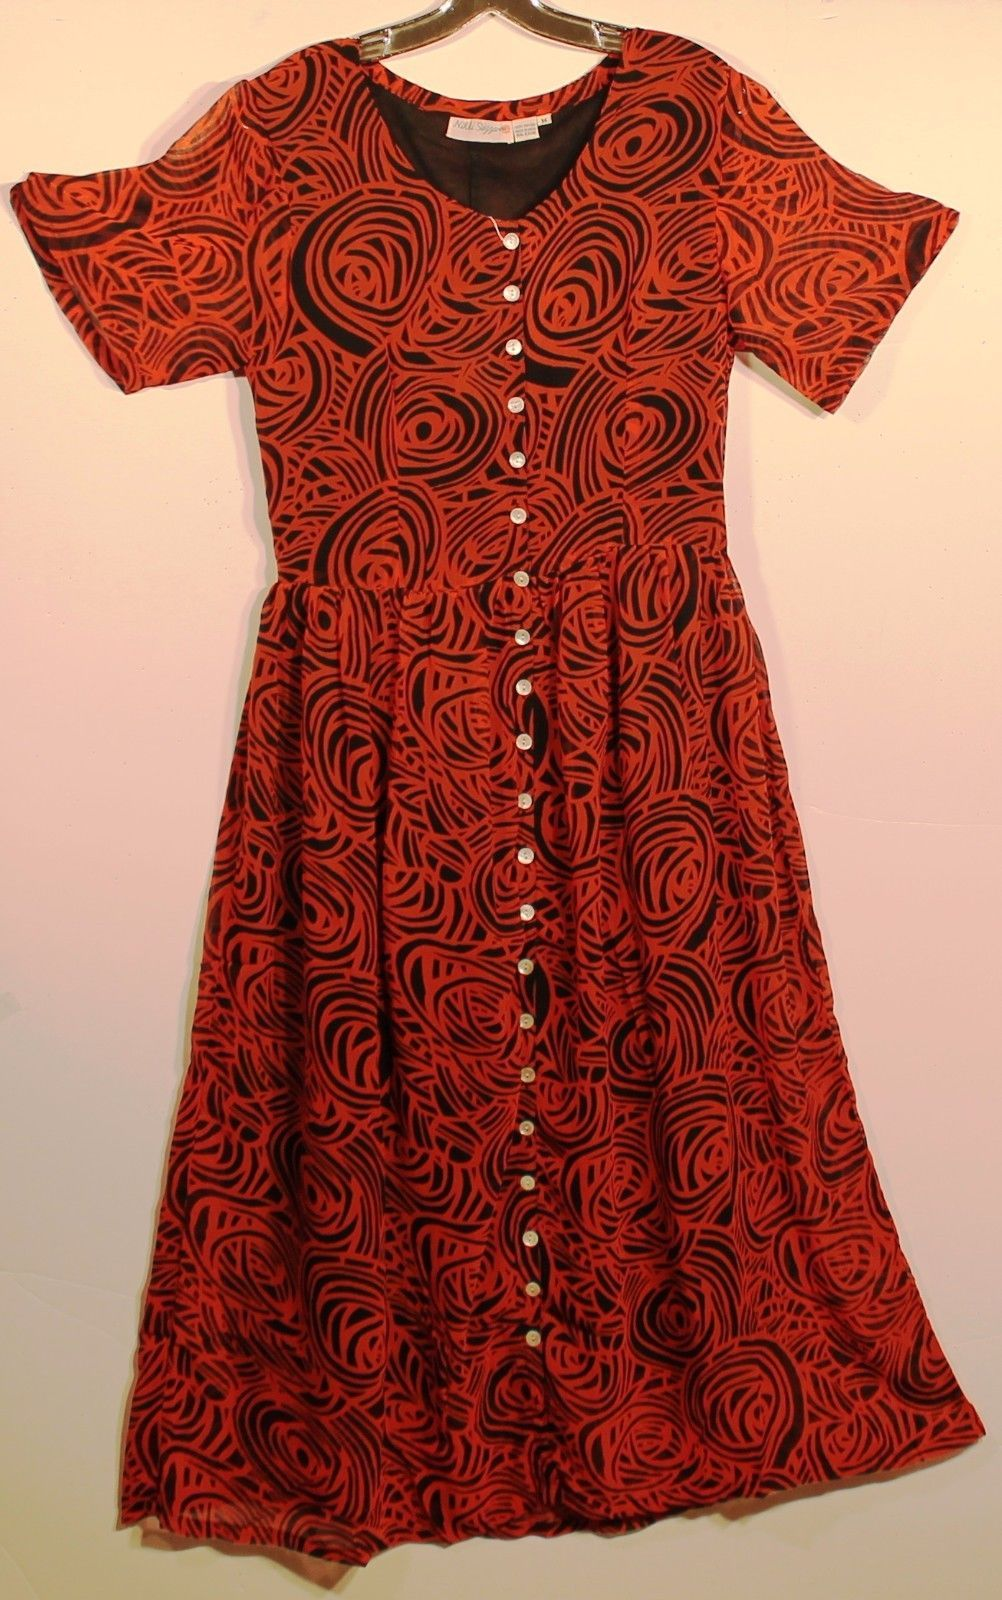 Awesome awesome rustic red and black rose swirl rayon maxi dress